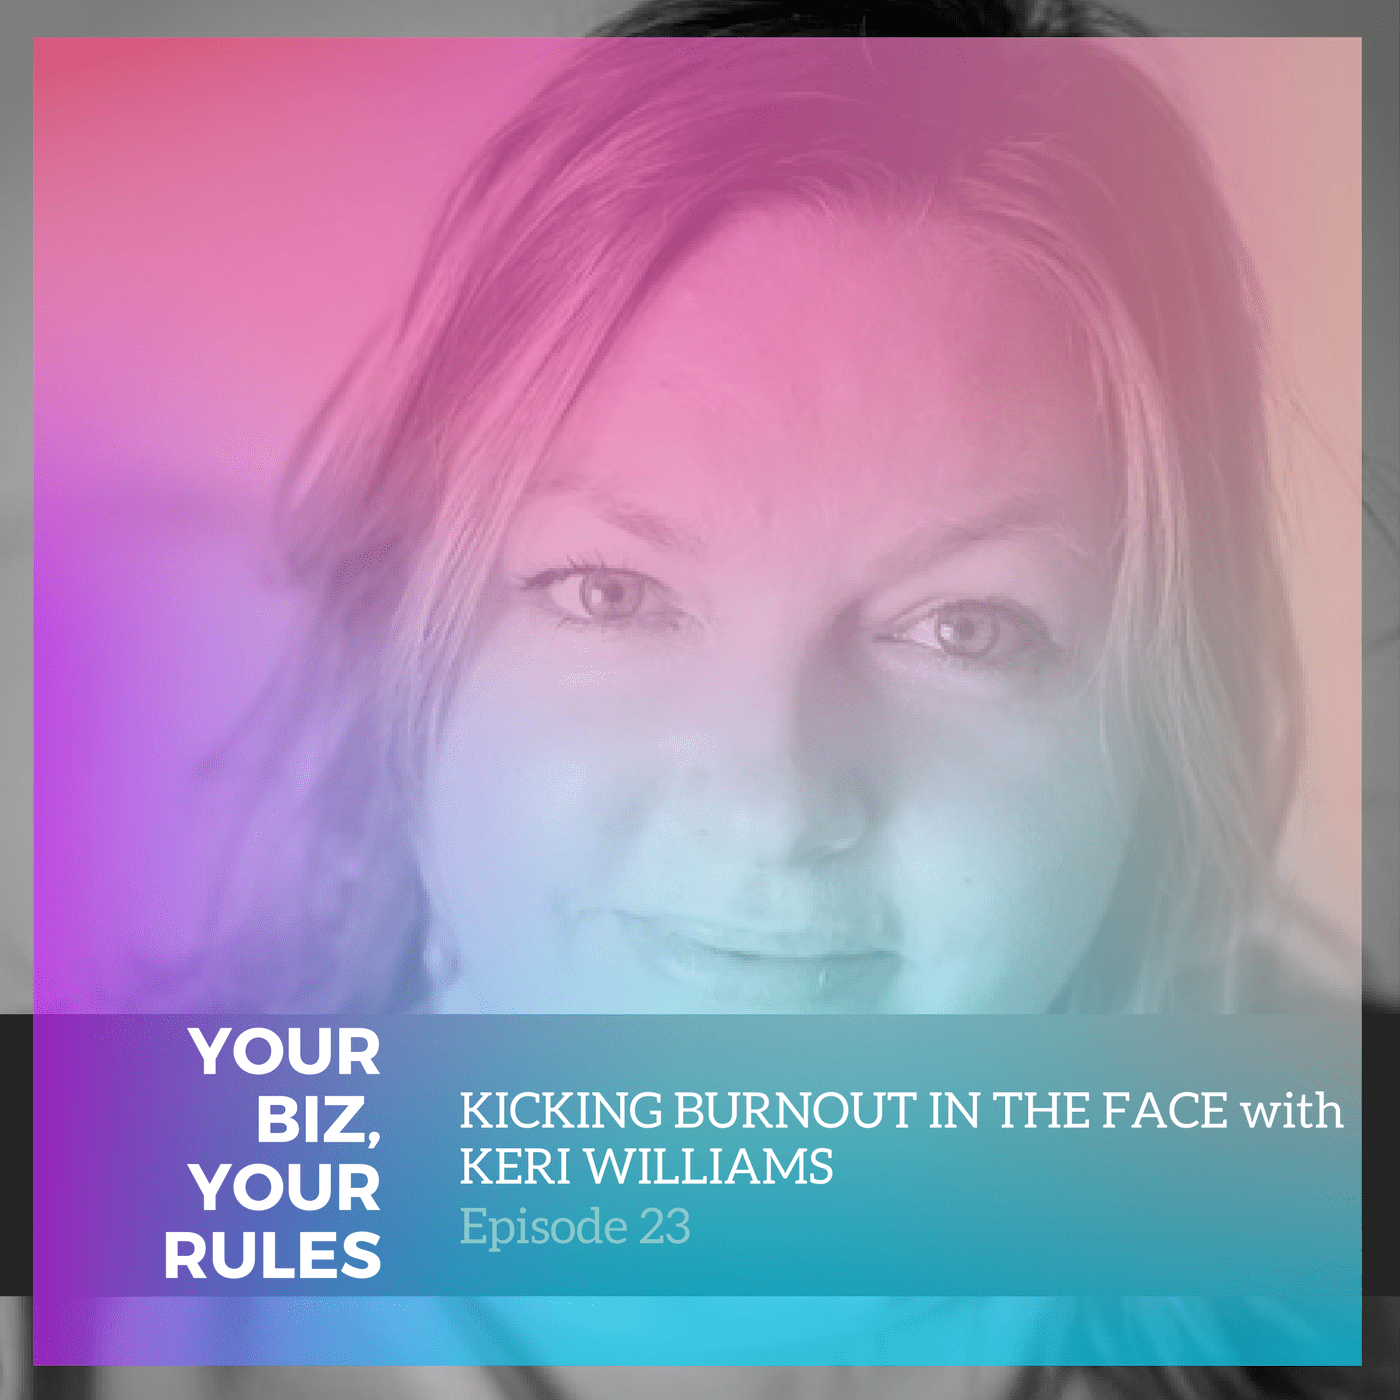 Kicking burnout in the face with Keri WIlliams